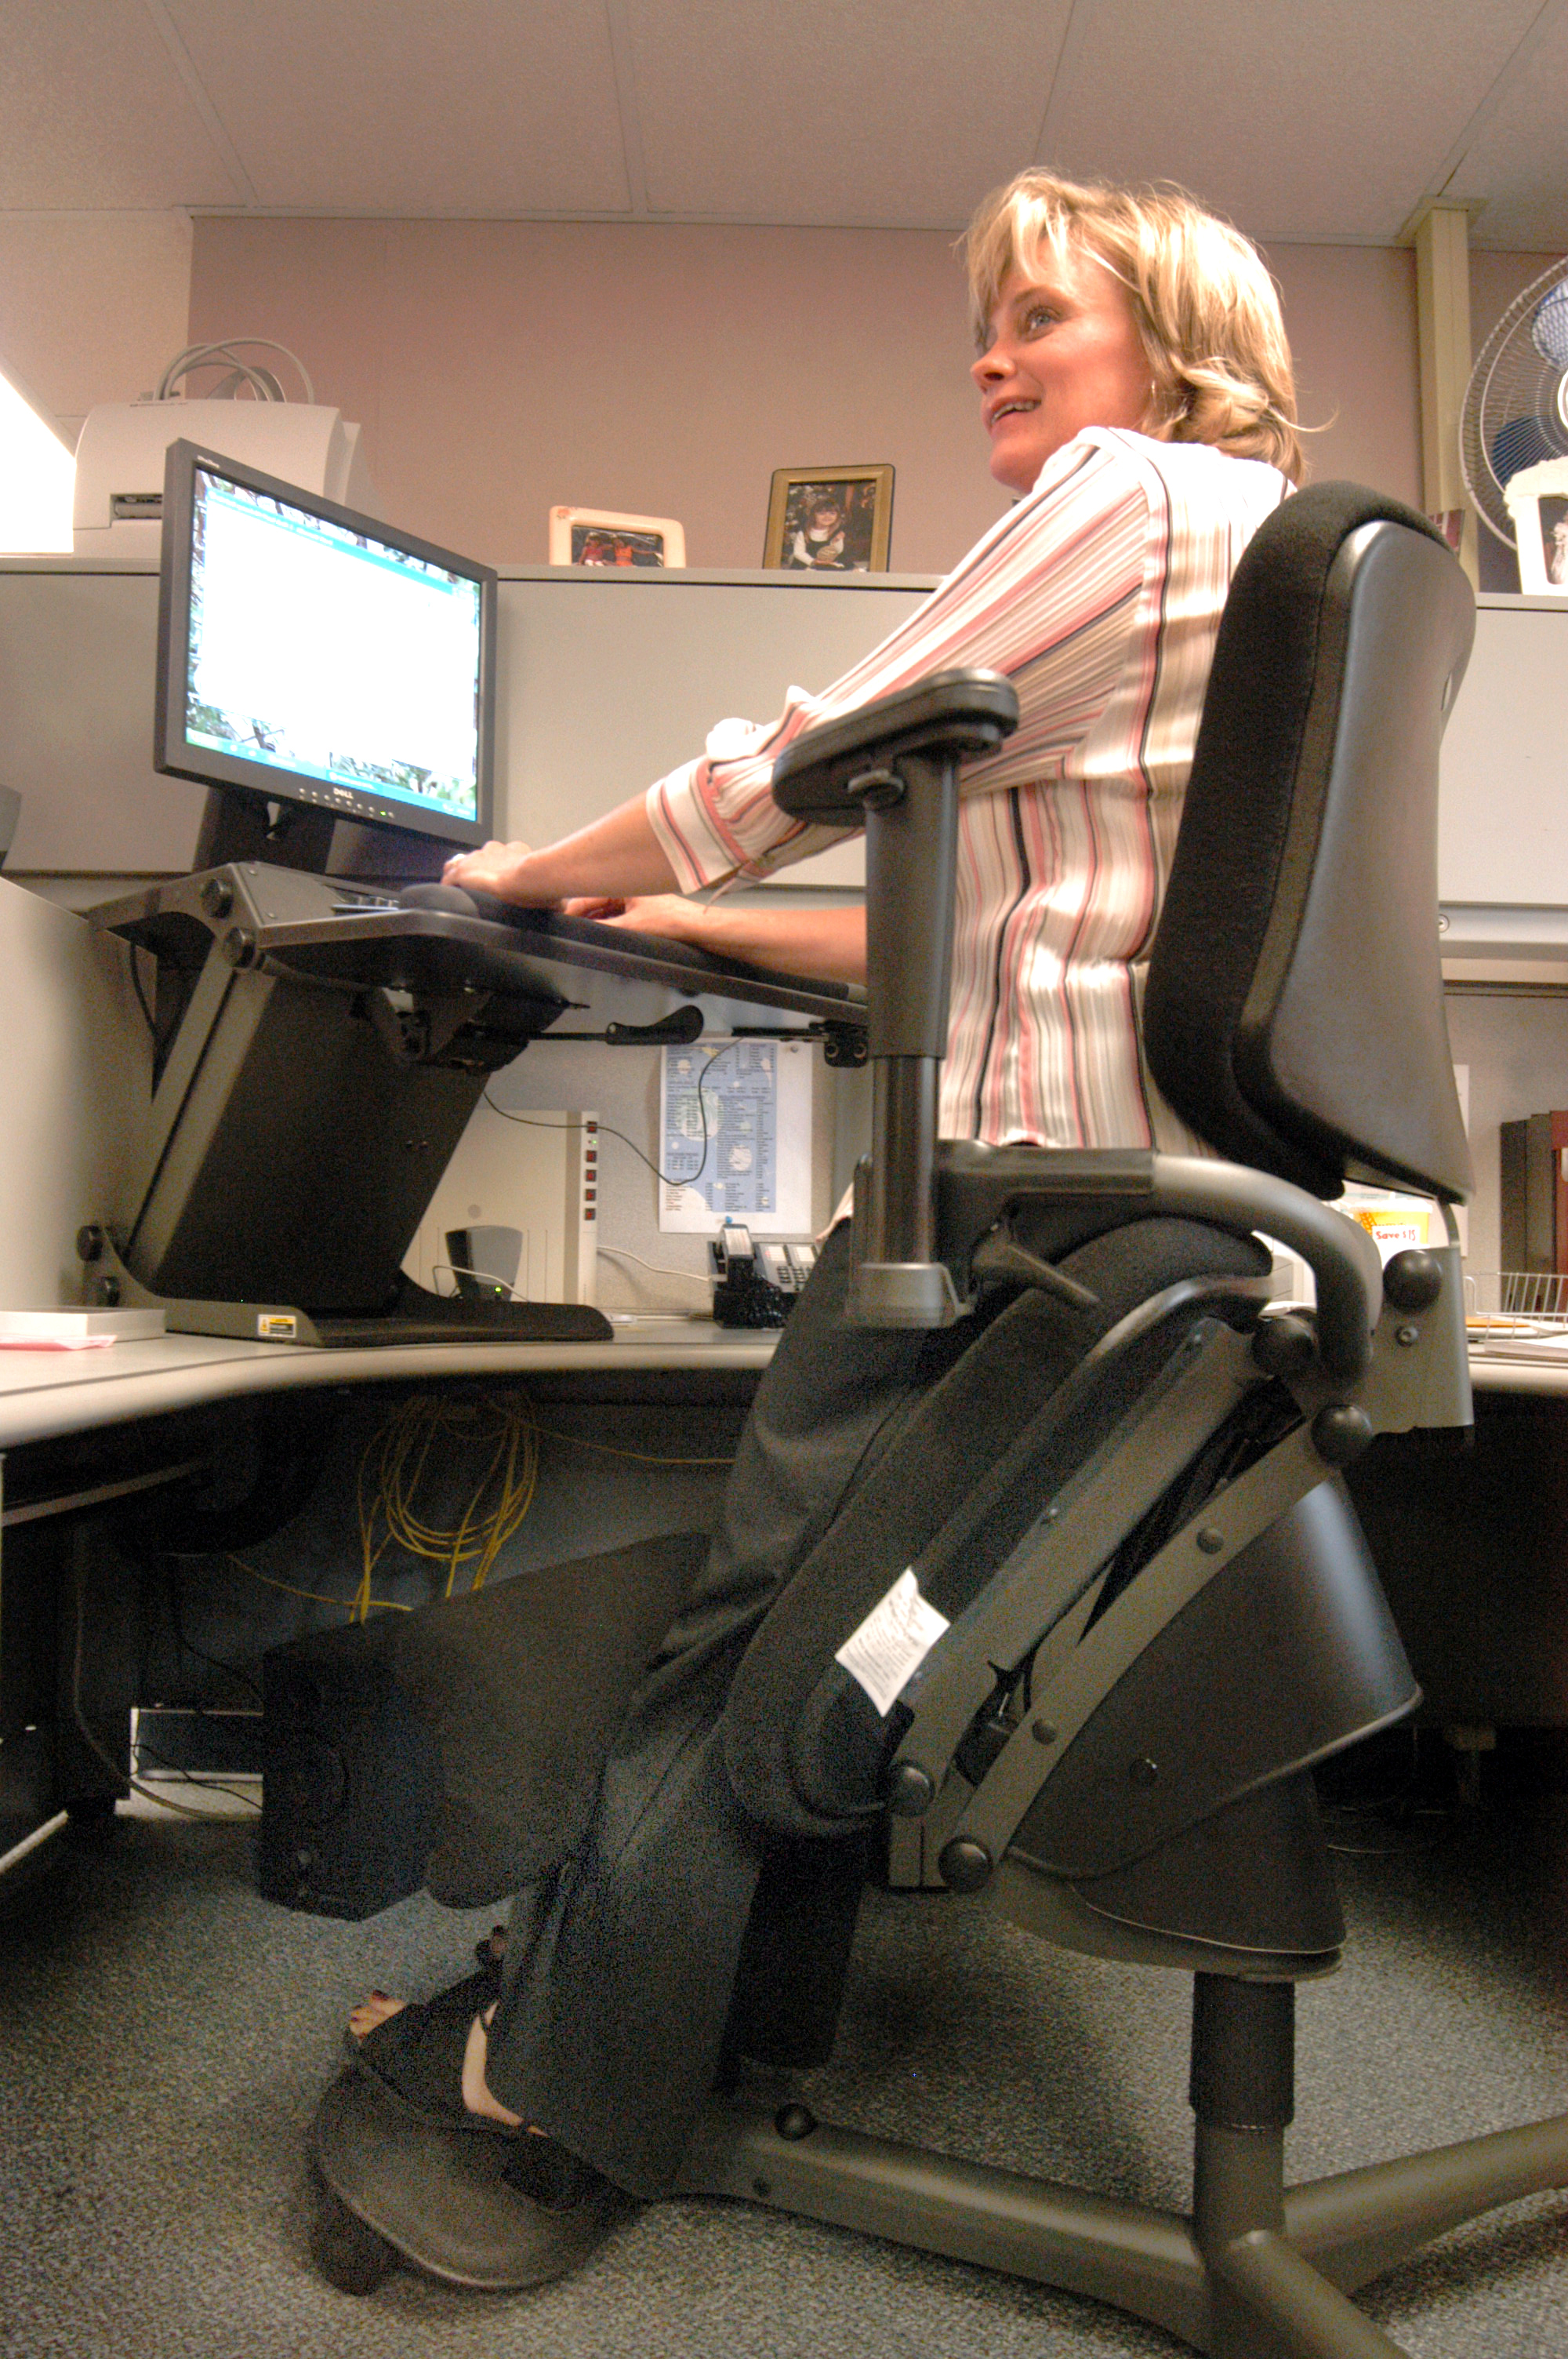 ergonomic chair brisbane covers by sylwia desk system helps civilian stand to work u s air